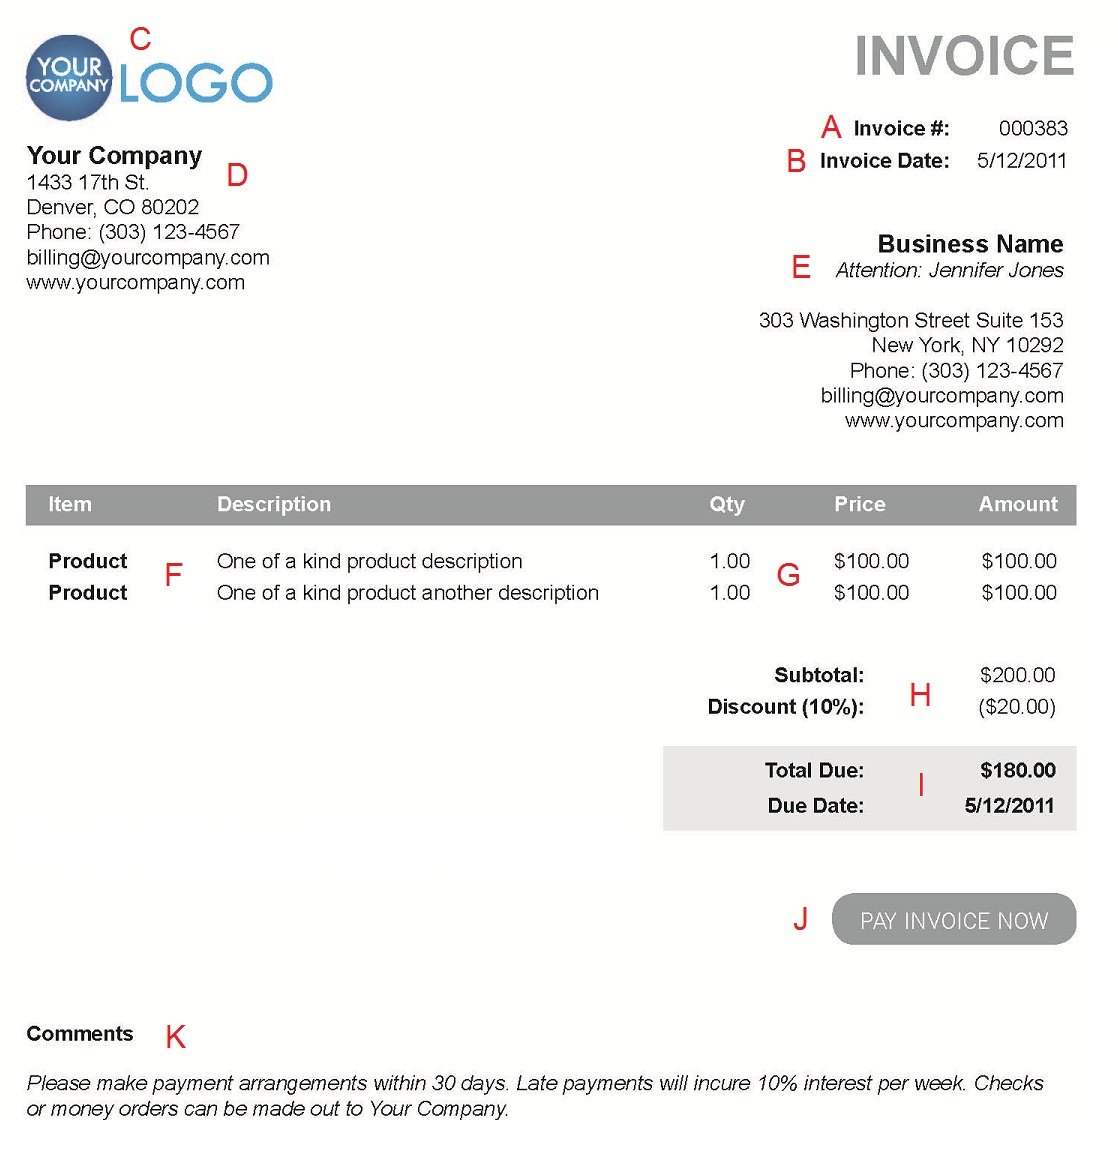 Ultrablogus  Fascinating The  Different Sections Of An Electronic Payment Invoice With Marvelous A  With Amusing Late Payment Invoice Template Also Restaurant Invoice Sample In Addition Hotel Invoice Sample And Ultimate Invoice Finance As Well As Free Download Invoice Format Additionally Printable Blank Invoice Forms From Paysimplecom With Ultrablogus  Marvelous The  Different Sections Of An Electronic Payment Invoice With Amusing A  And Fascinating Late Payment Invoice Template Also Restaurant Invoice Sample In Addition Hotel Invoice Sample From Paysimplecom